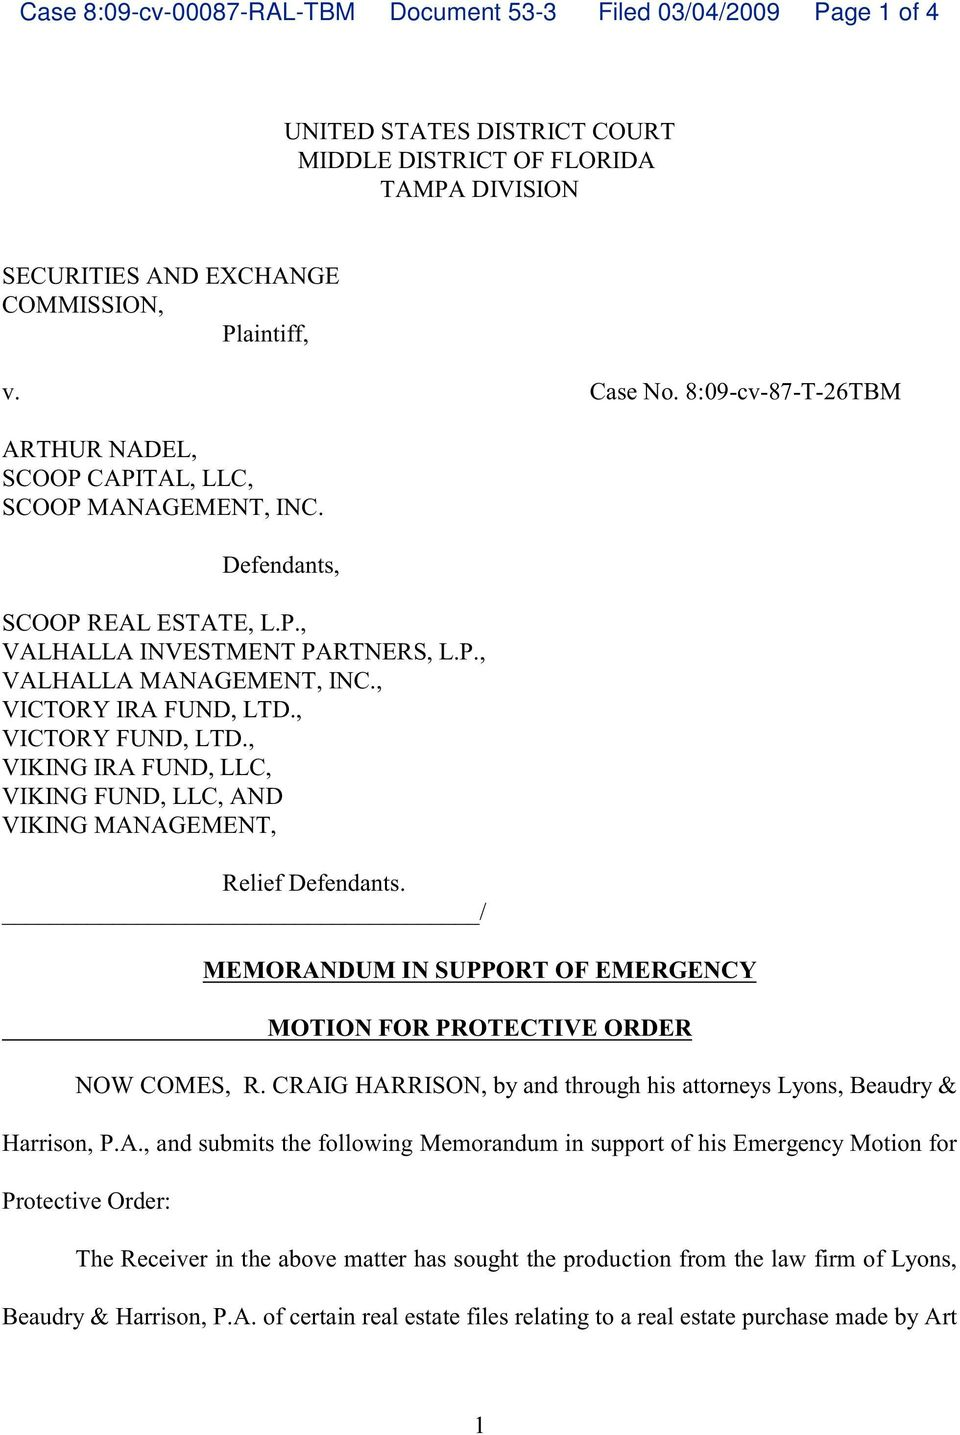 , VICTORY FUND, LTD., VIKING IRA FUND, LLC, VIKING FUND, LLC, AND VIKING MANAGEMENT, Relief Defendants. / MEMORANDUM IN SUPPORT OF EMERGENCY MOTION FOR PROTECTIVE ORDER NOW COMES, R.